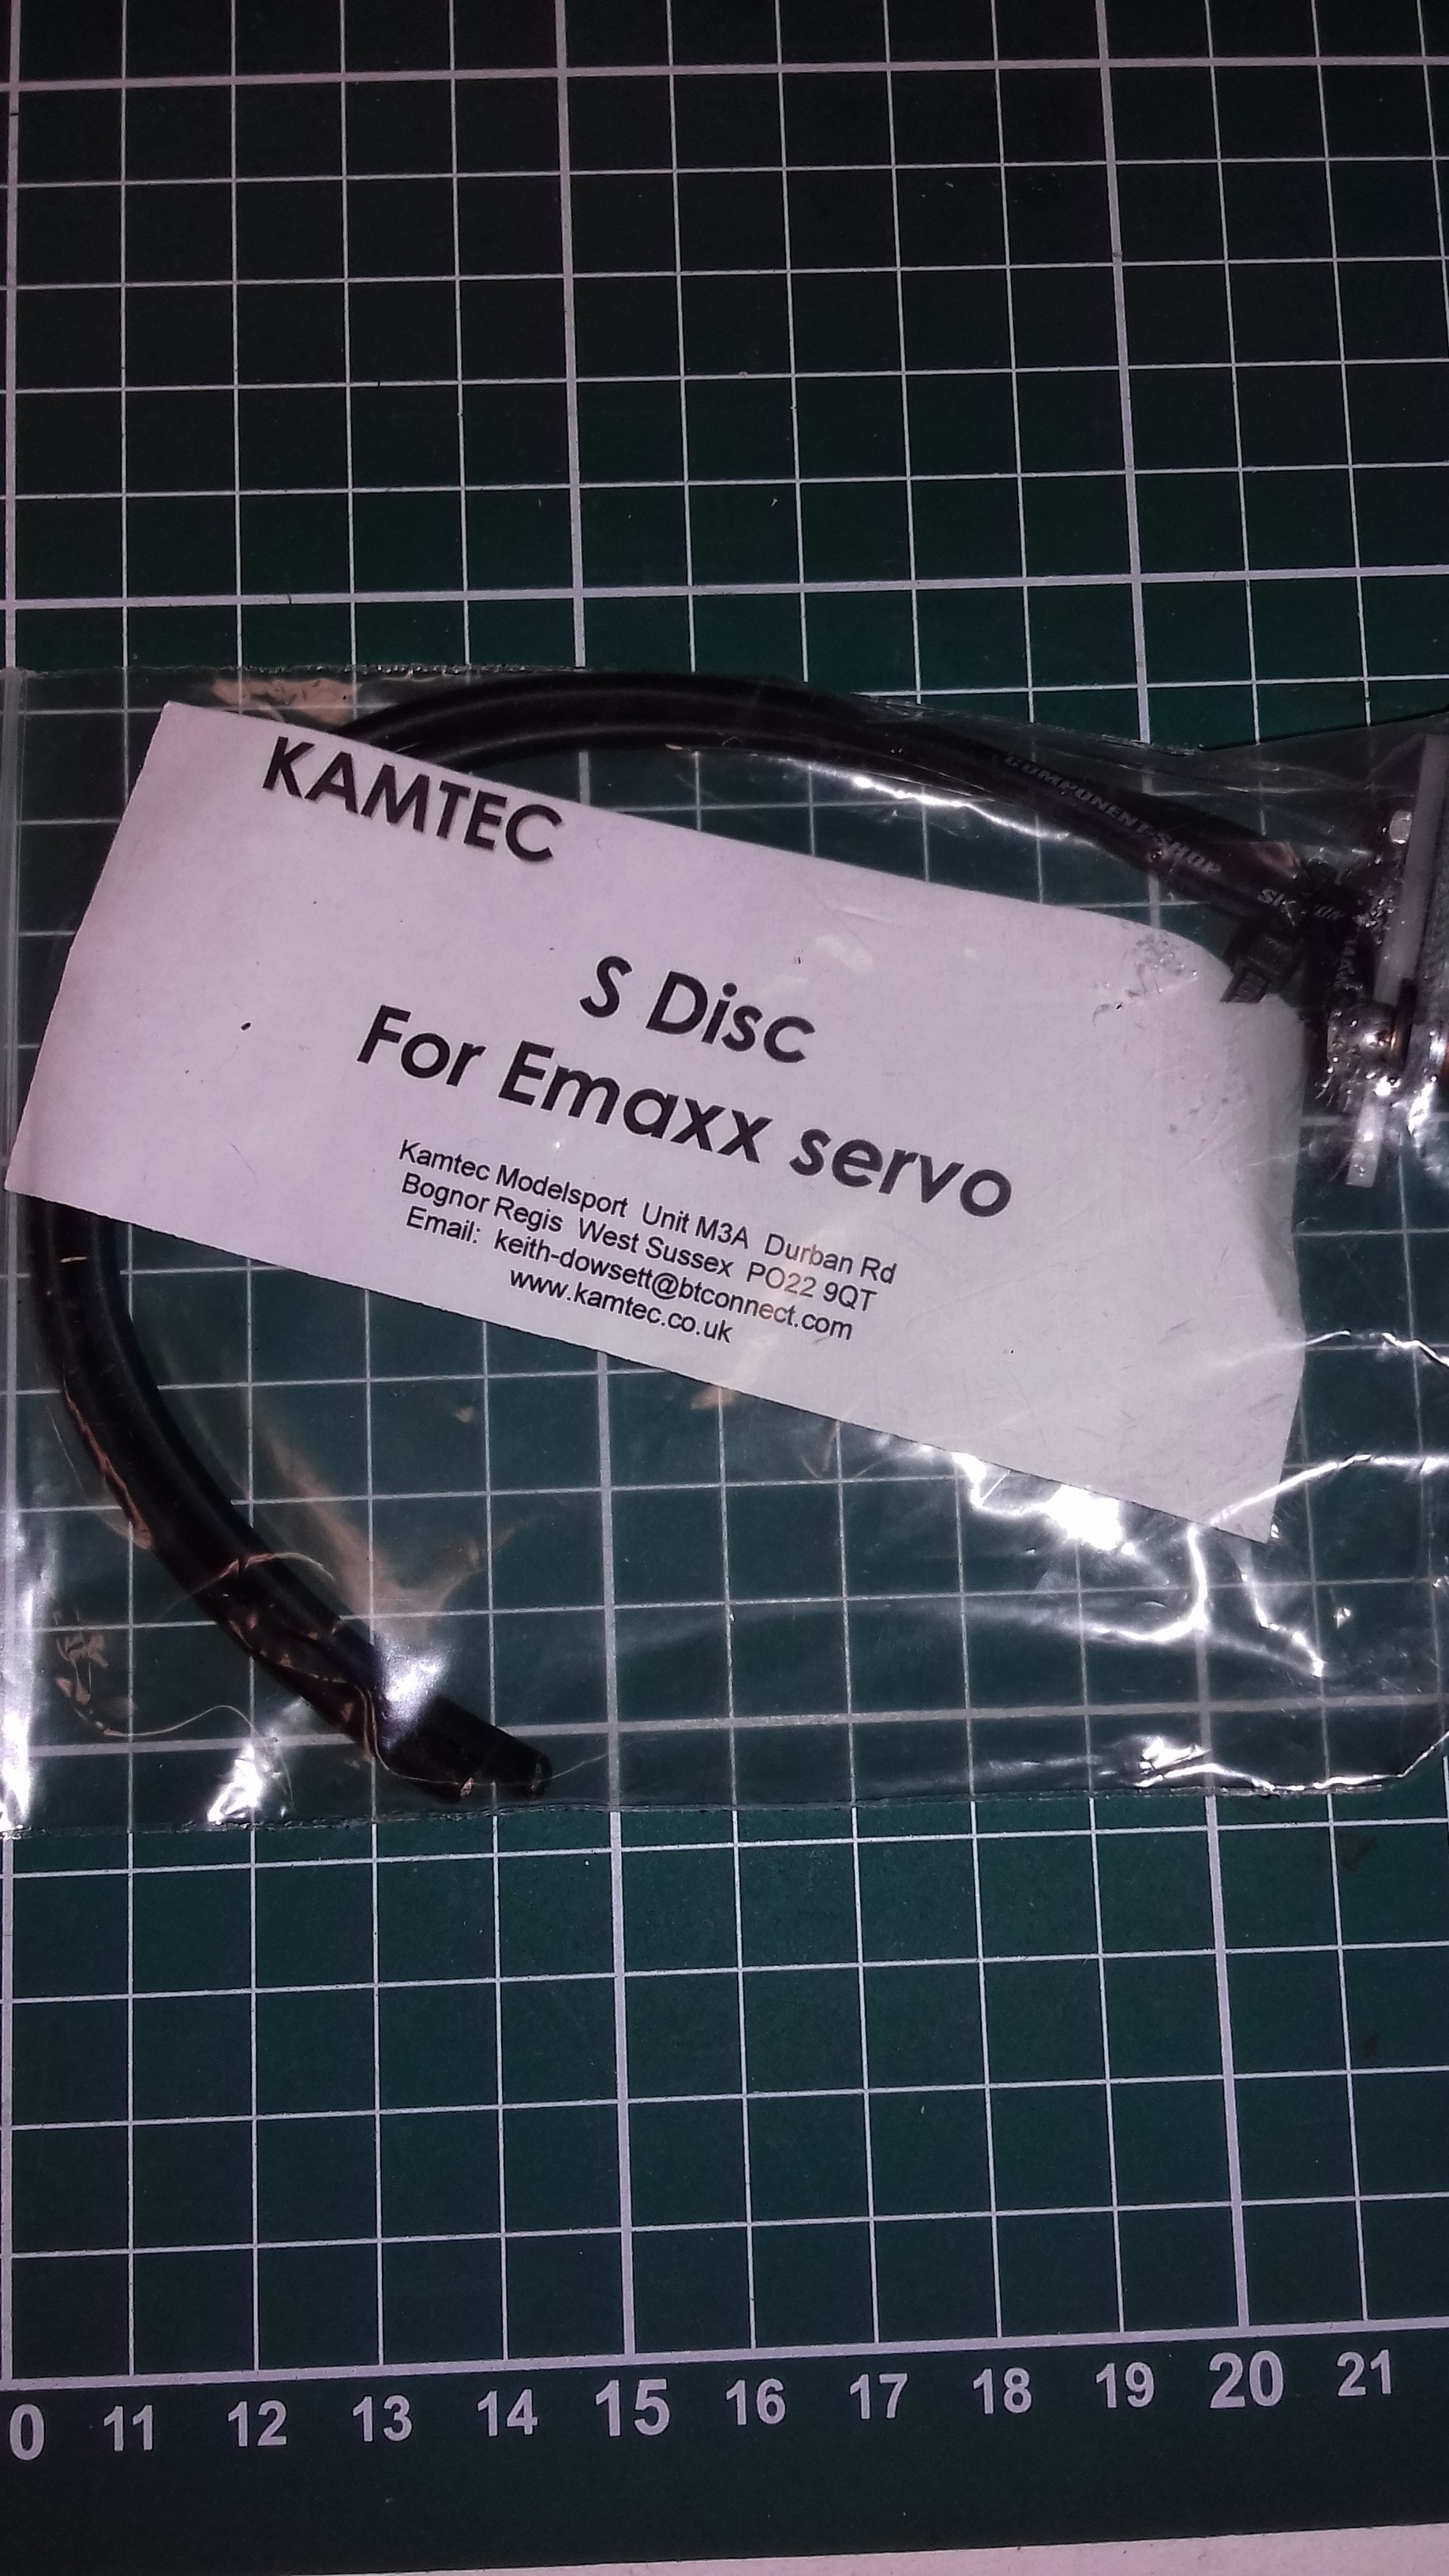 Kamtec S Disc for K10 Manual Speed Controllers Emax